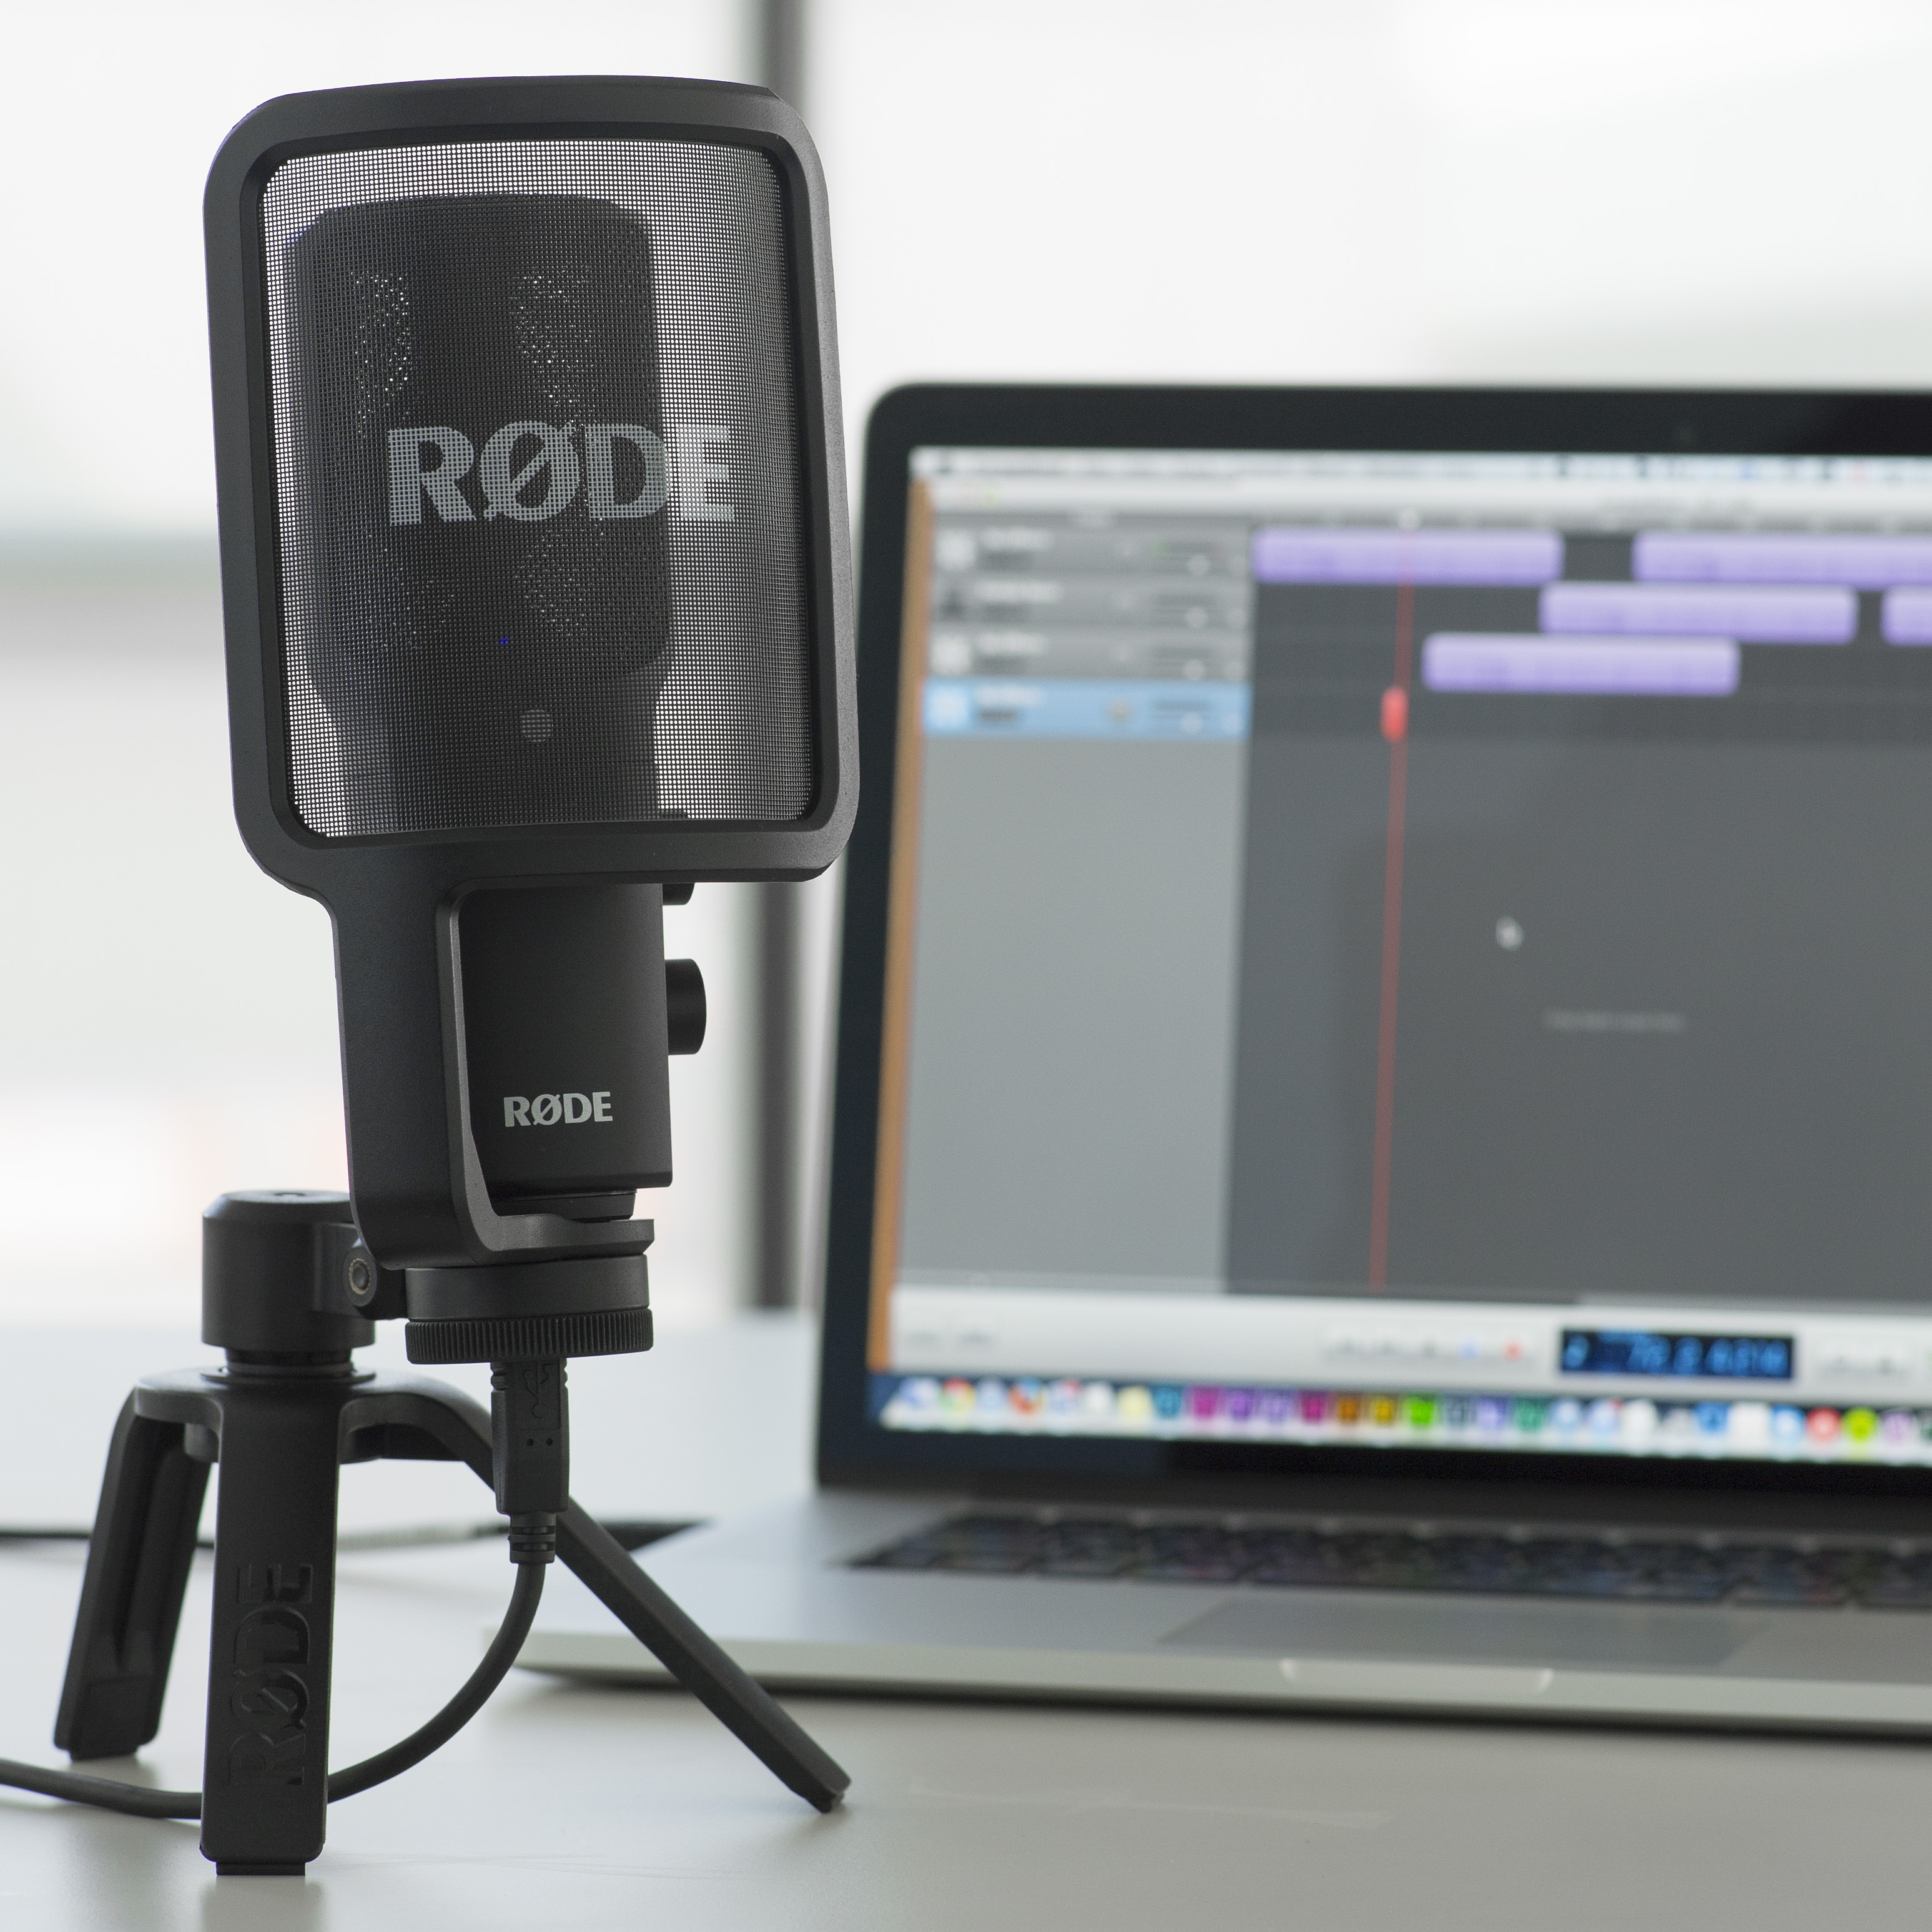 Enjoy Studio-quality recording on the go with the new RØDE NT-USB 4